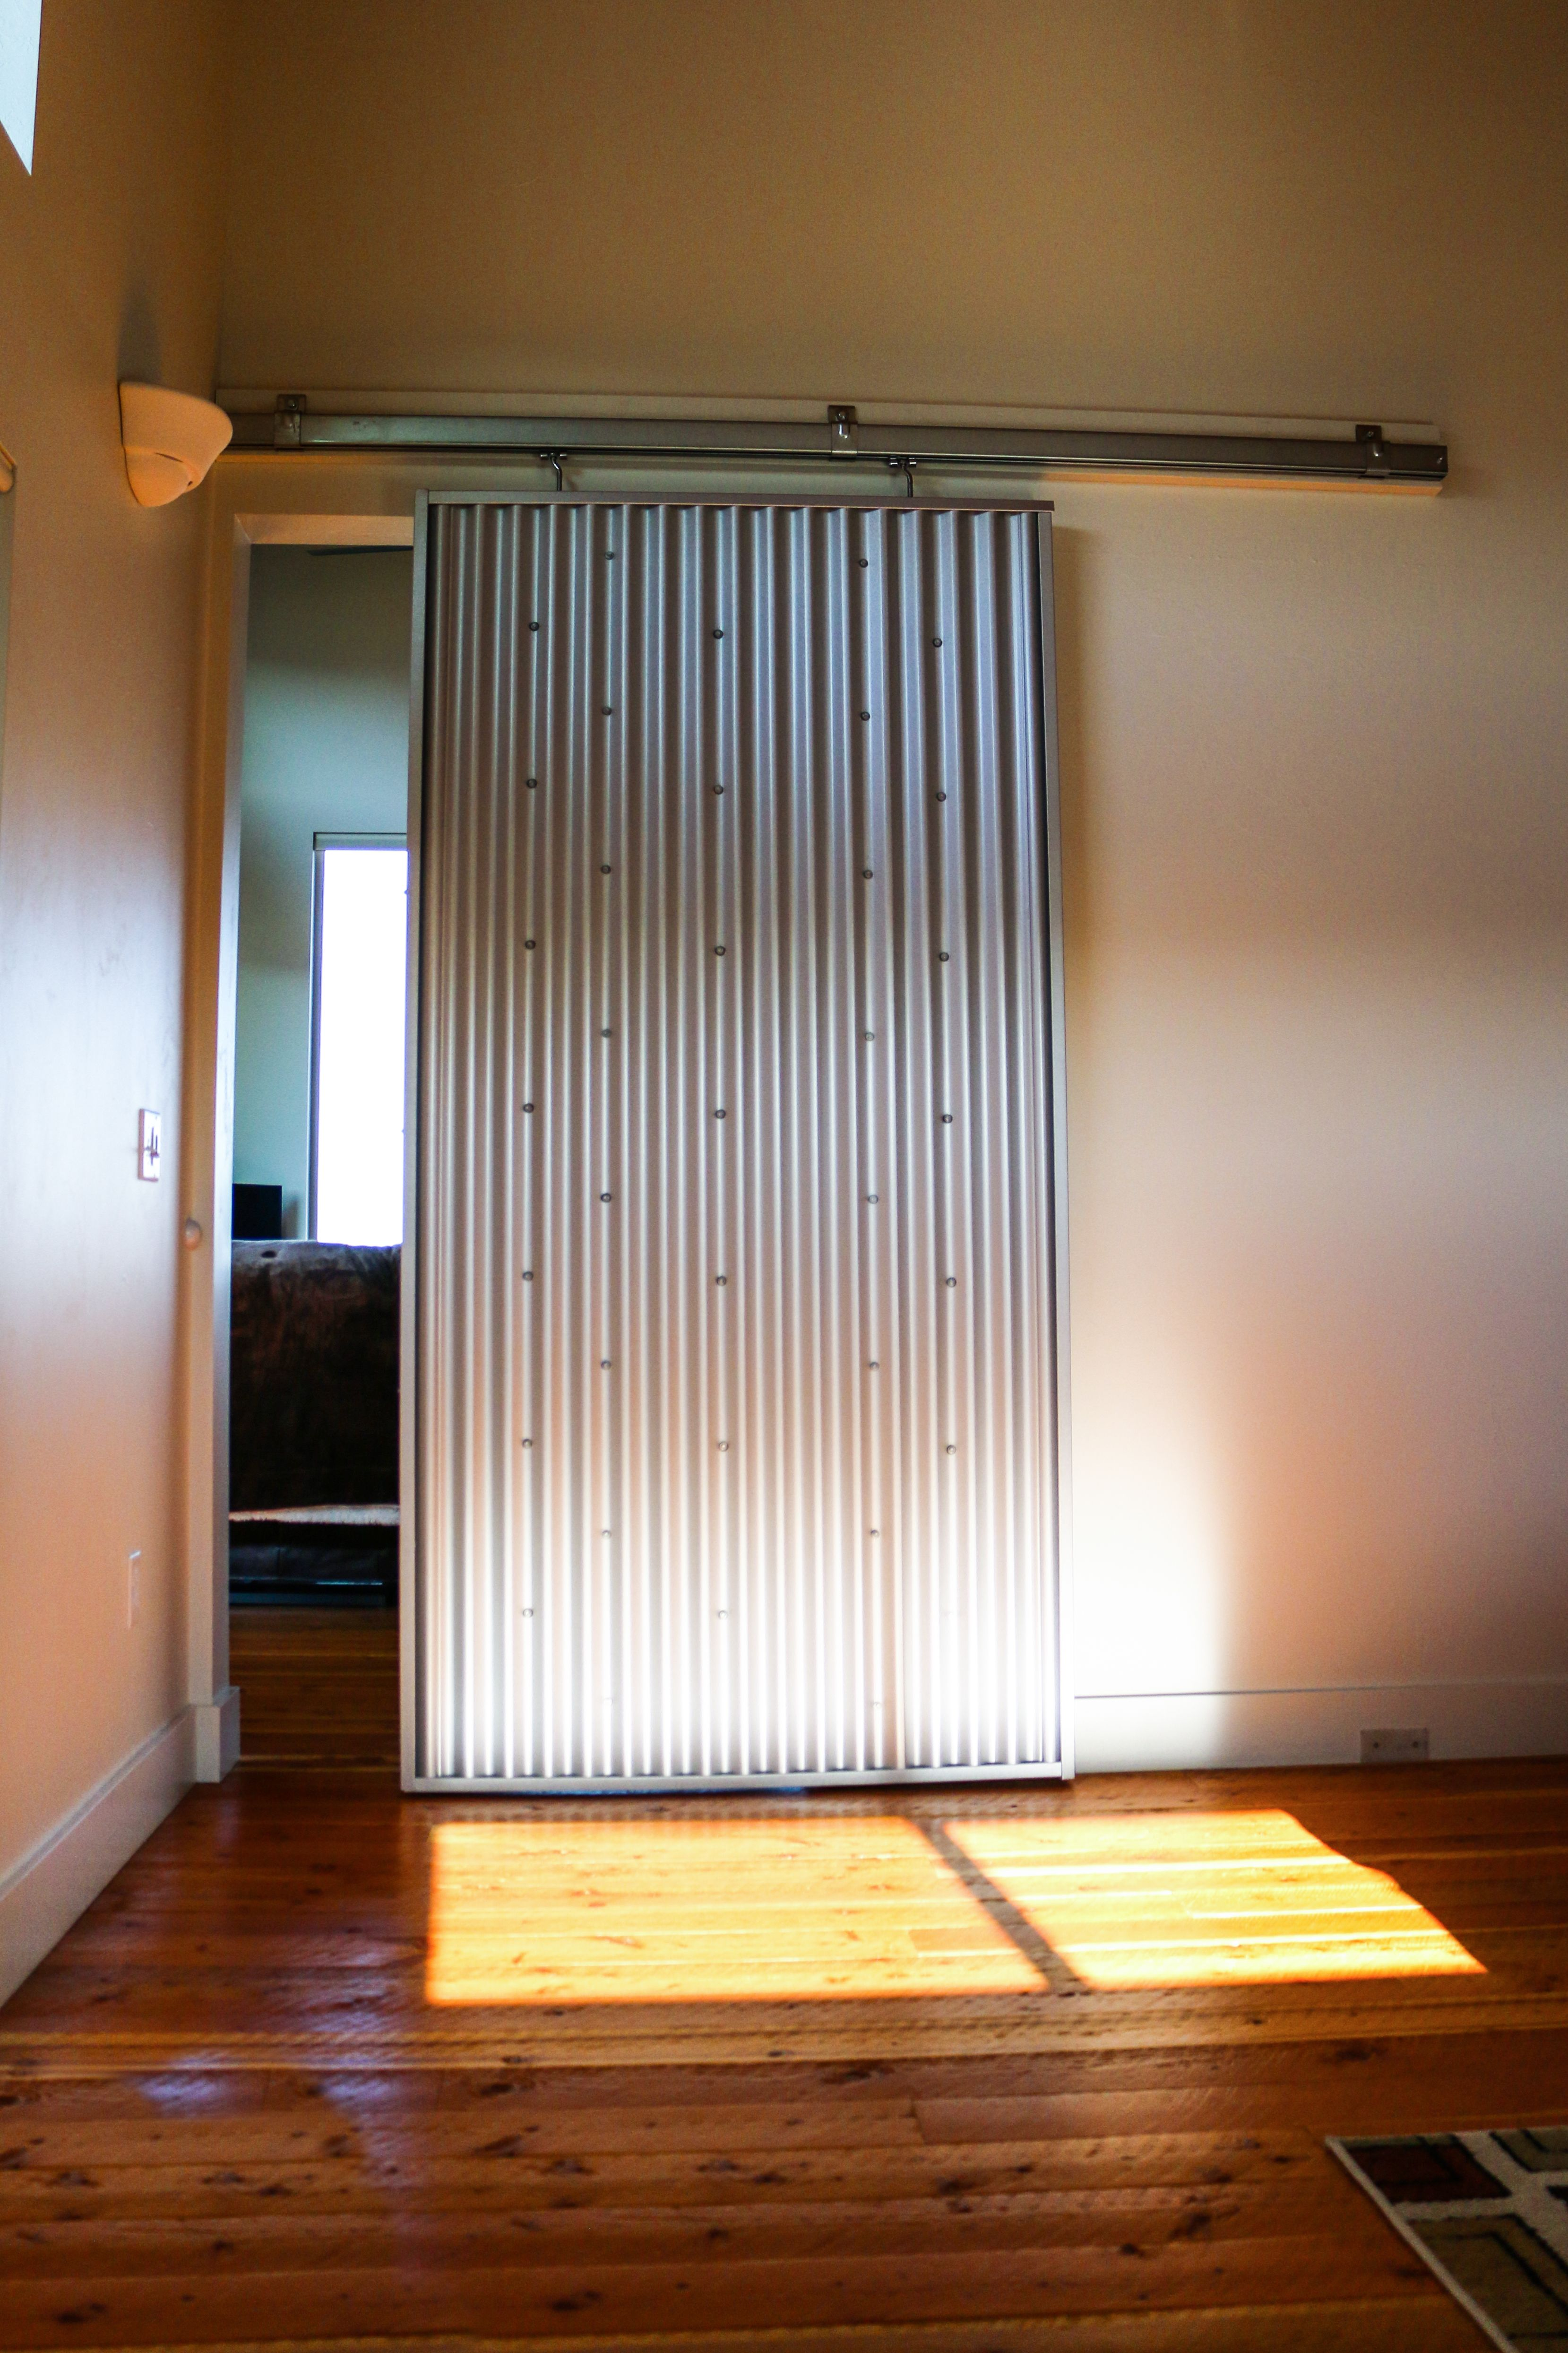 How To Install A Corrugated Metal Accent Wall: Check Out This Interior Sliding Door Made From Corrugated Metal In Galvalume!